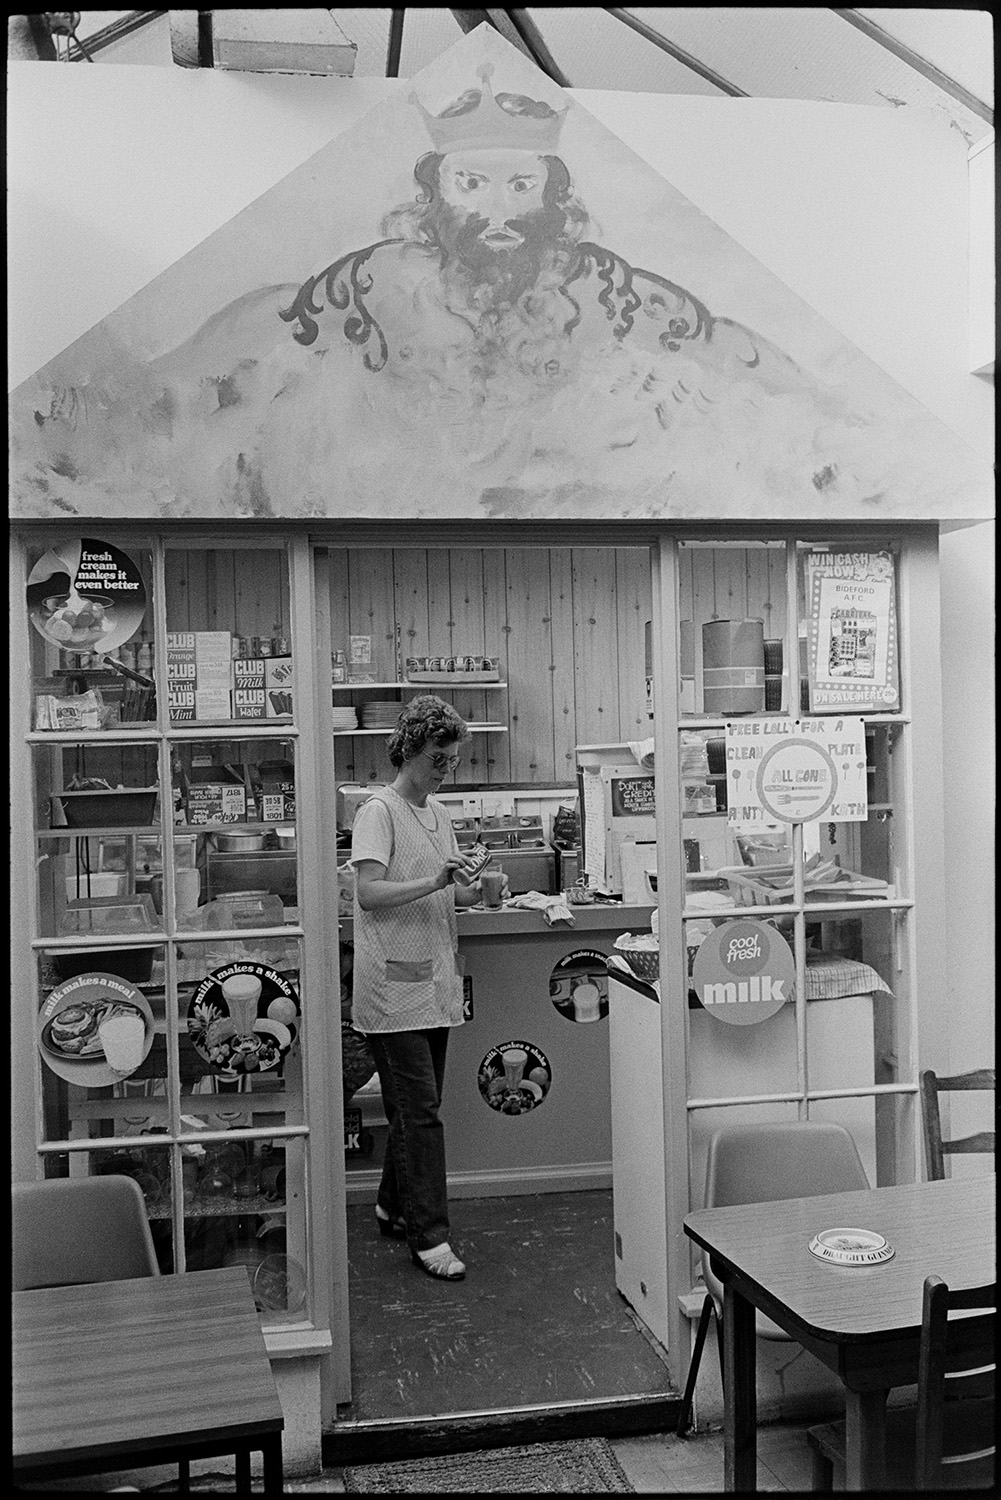 Front of cafe with mural painting. <br /> [The shop front of a café with a mural painting in a covered market at Bideford. A woman is pouring a glass of coca cola inside the café. Posters can be seen on the café windows.]